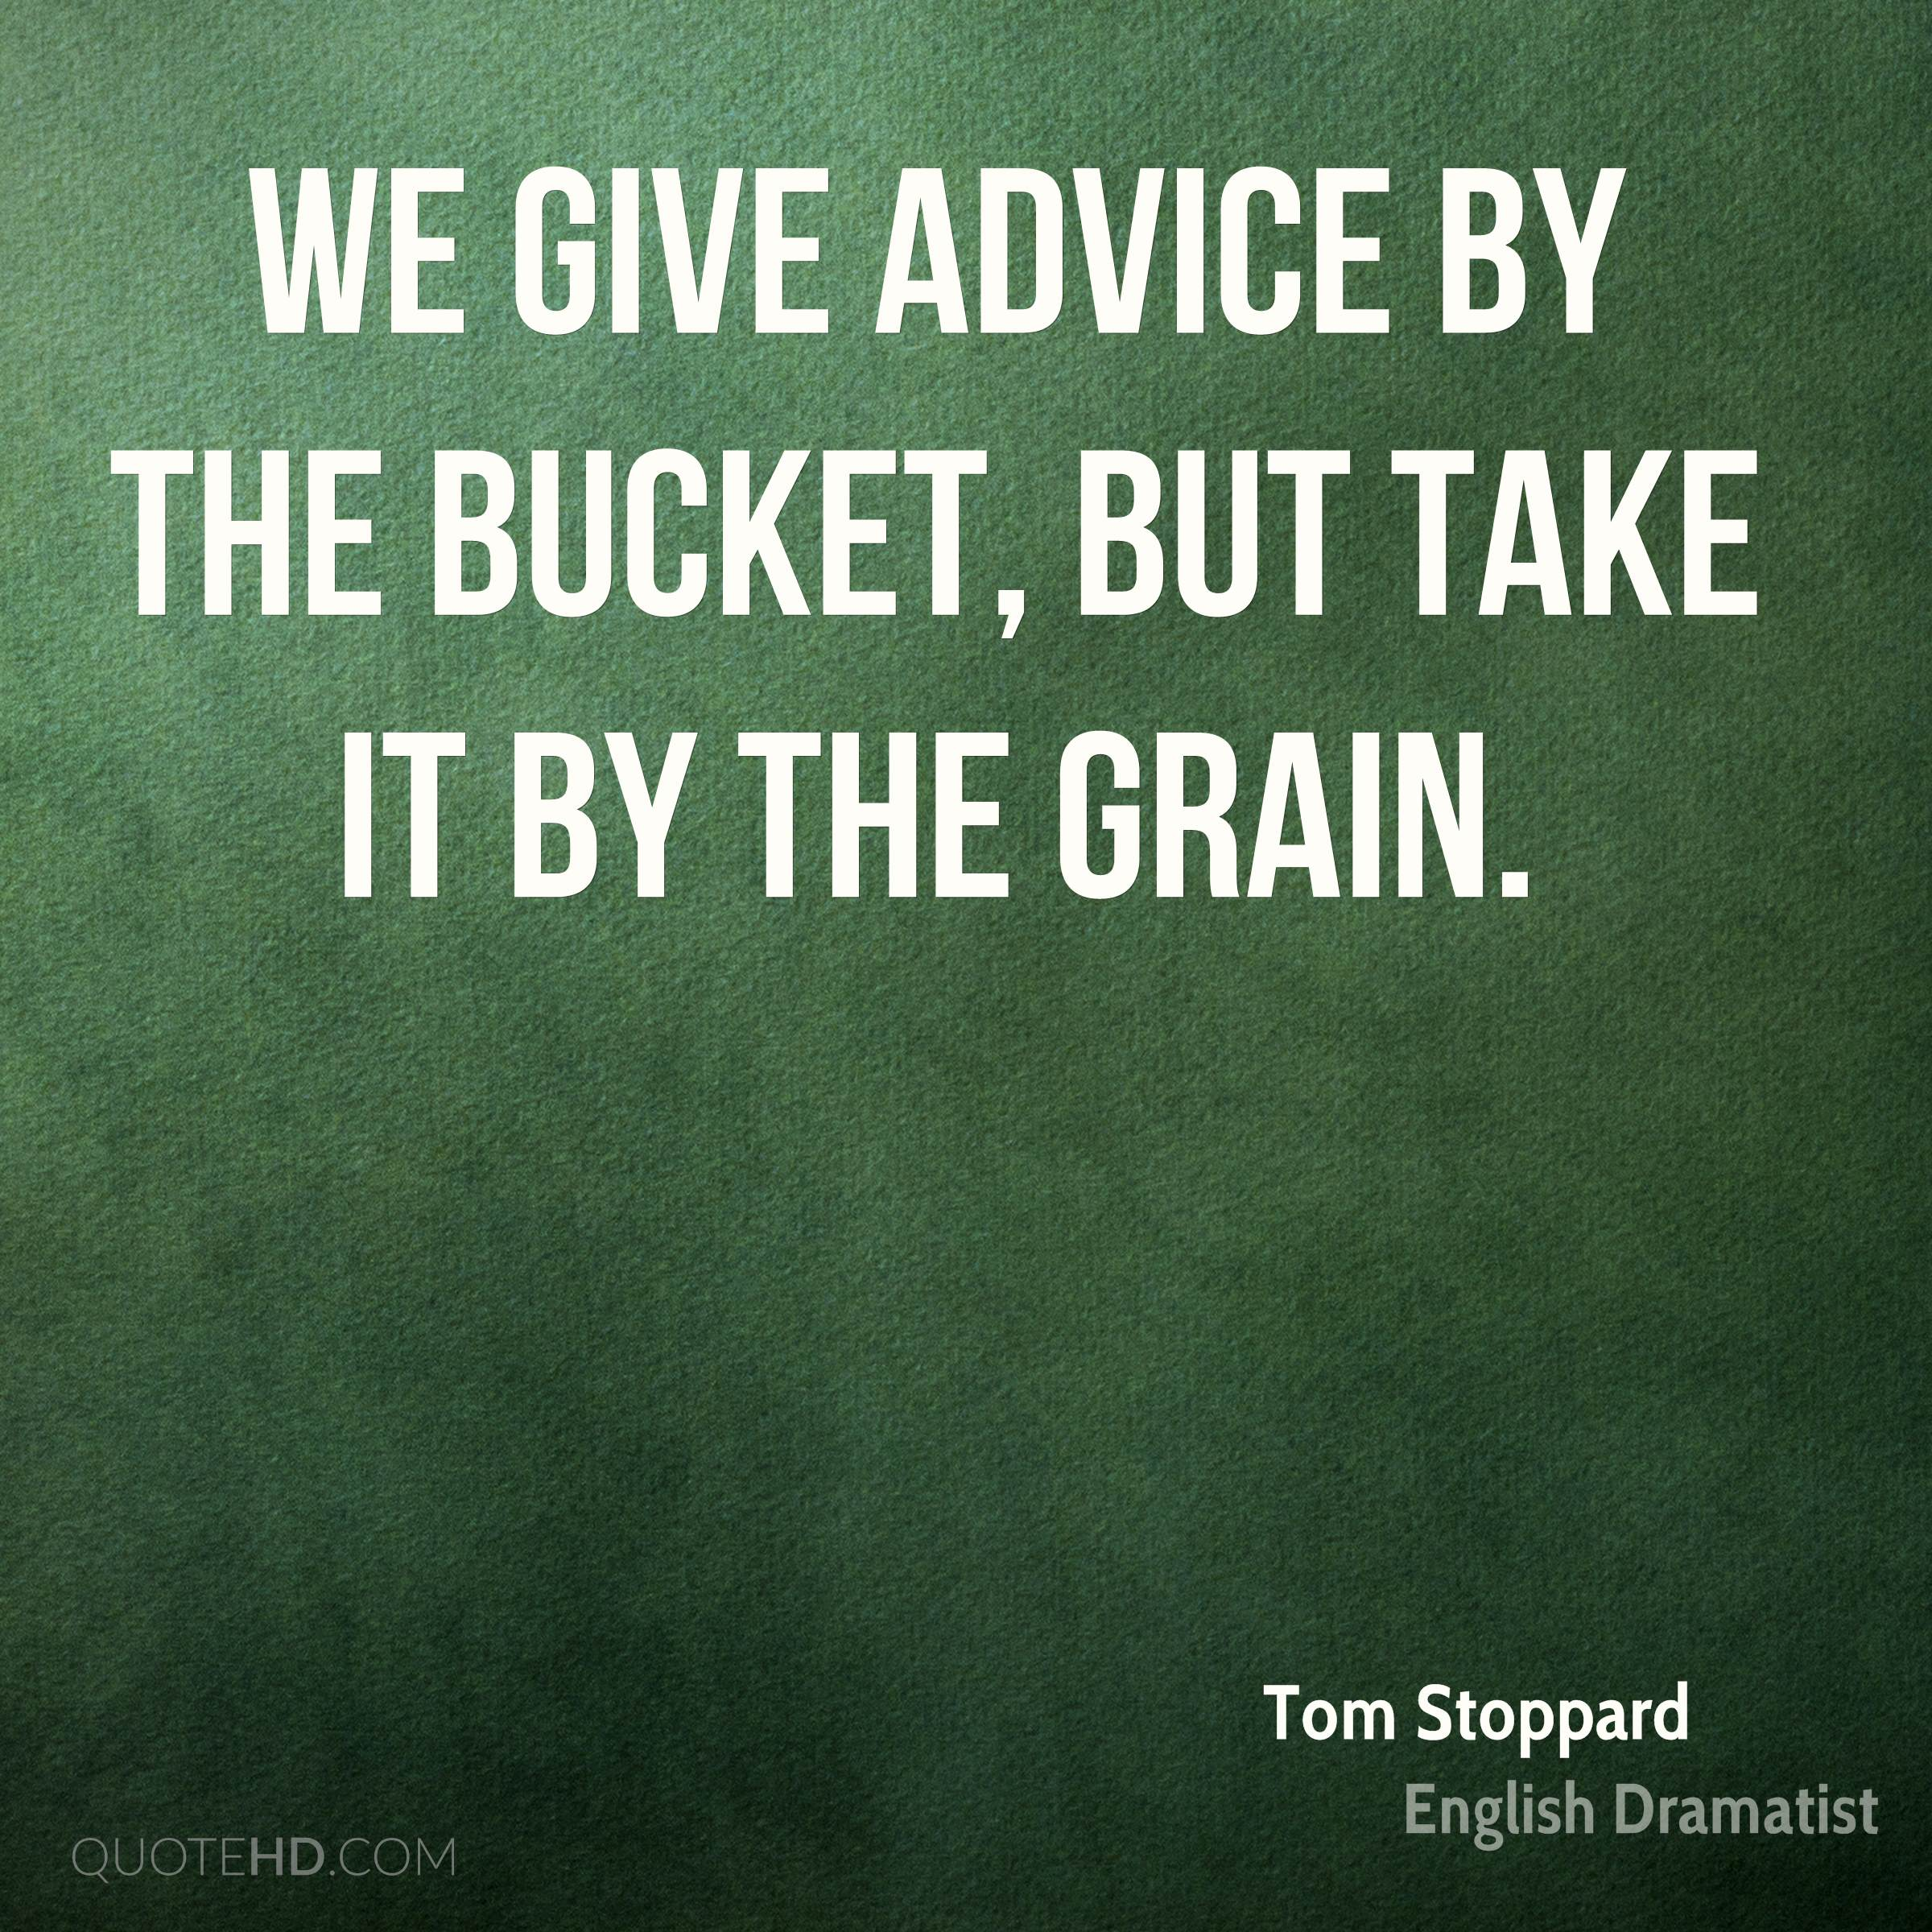 We give advice by the bucket, but take it by the grain.